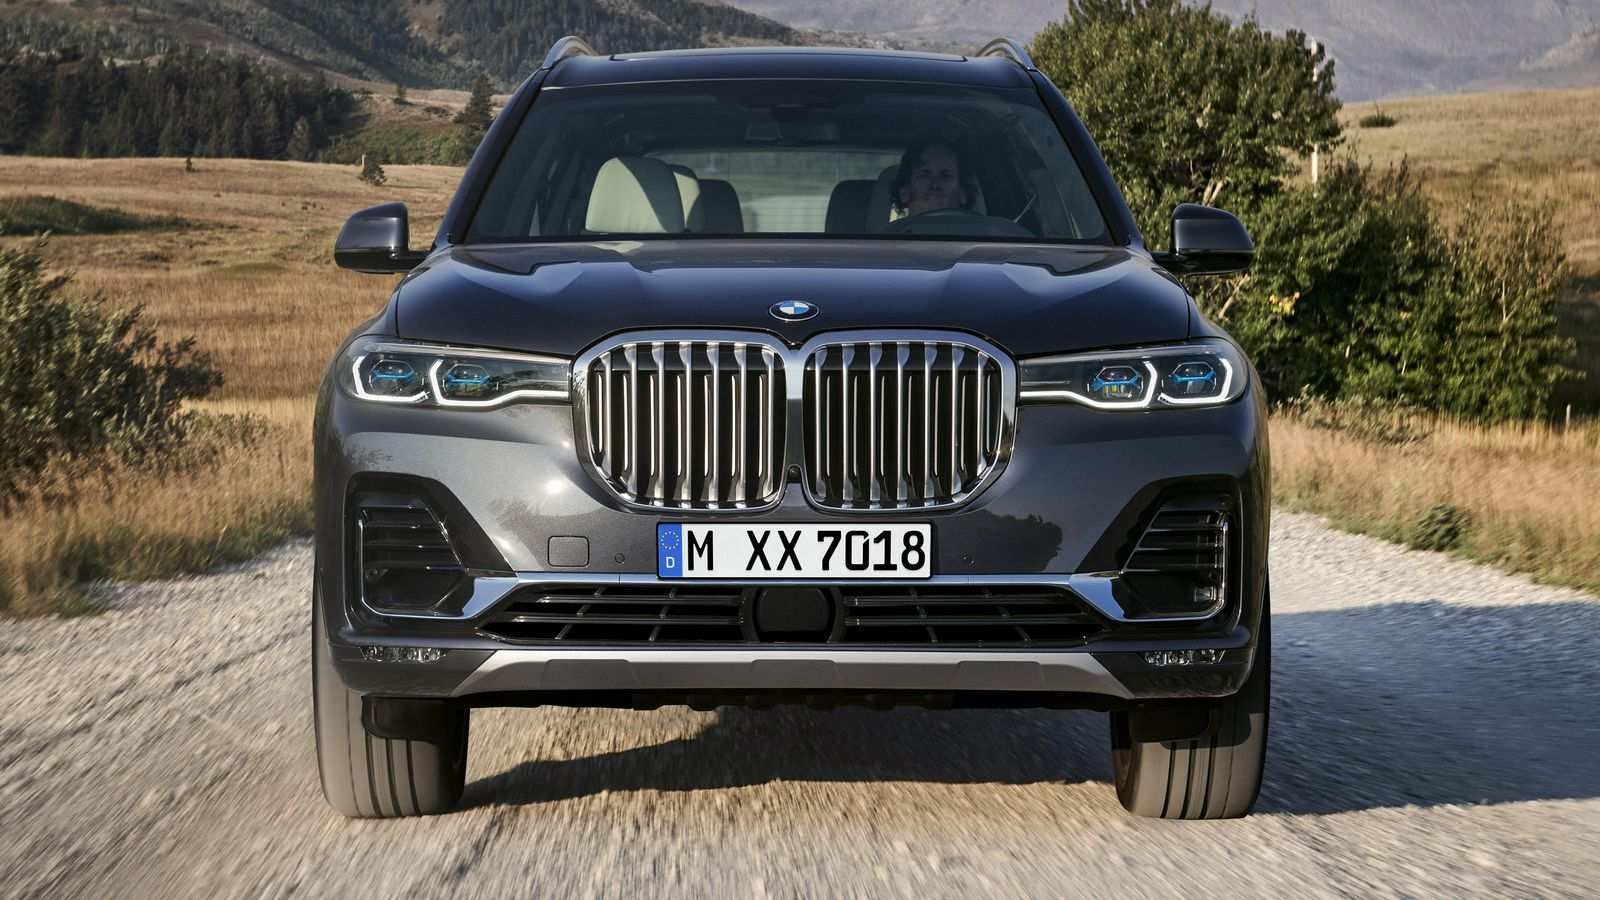 88 The 2019 BMW X7 Suv Series Images